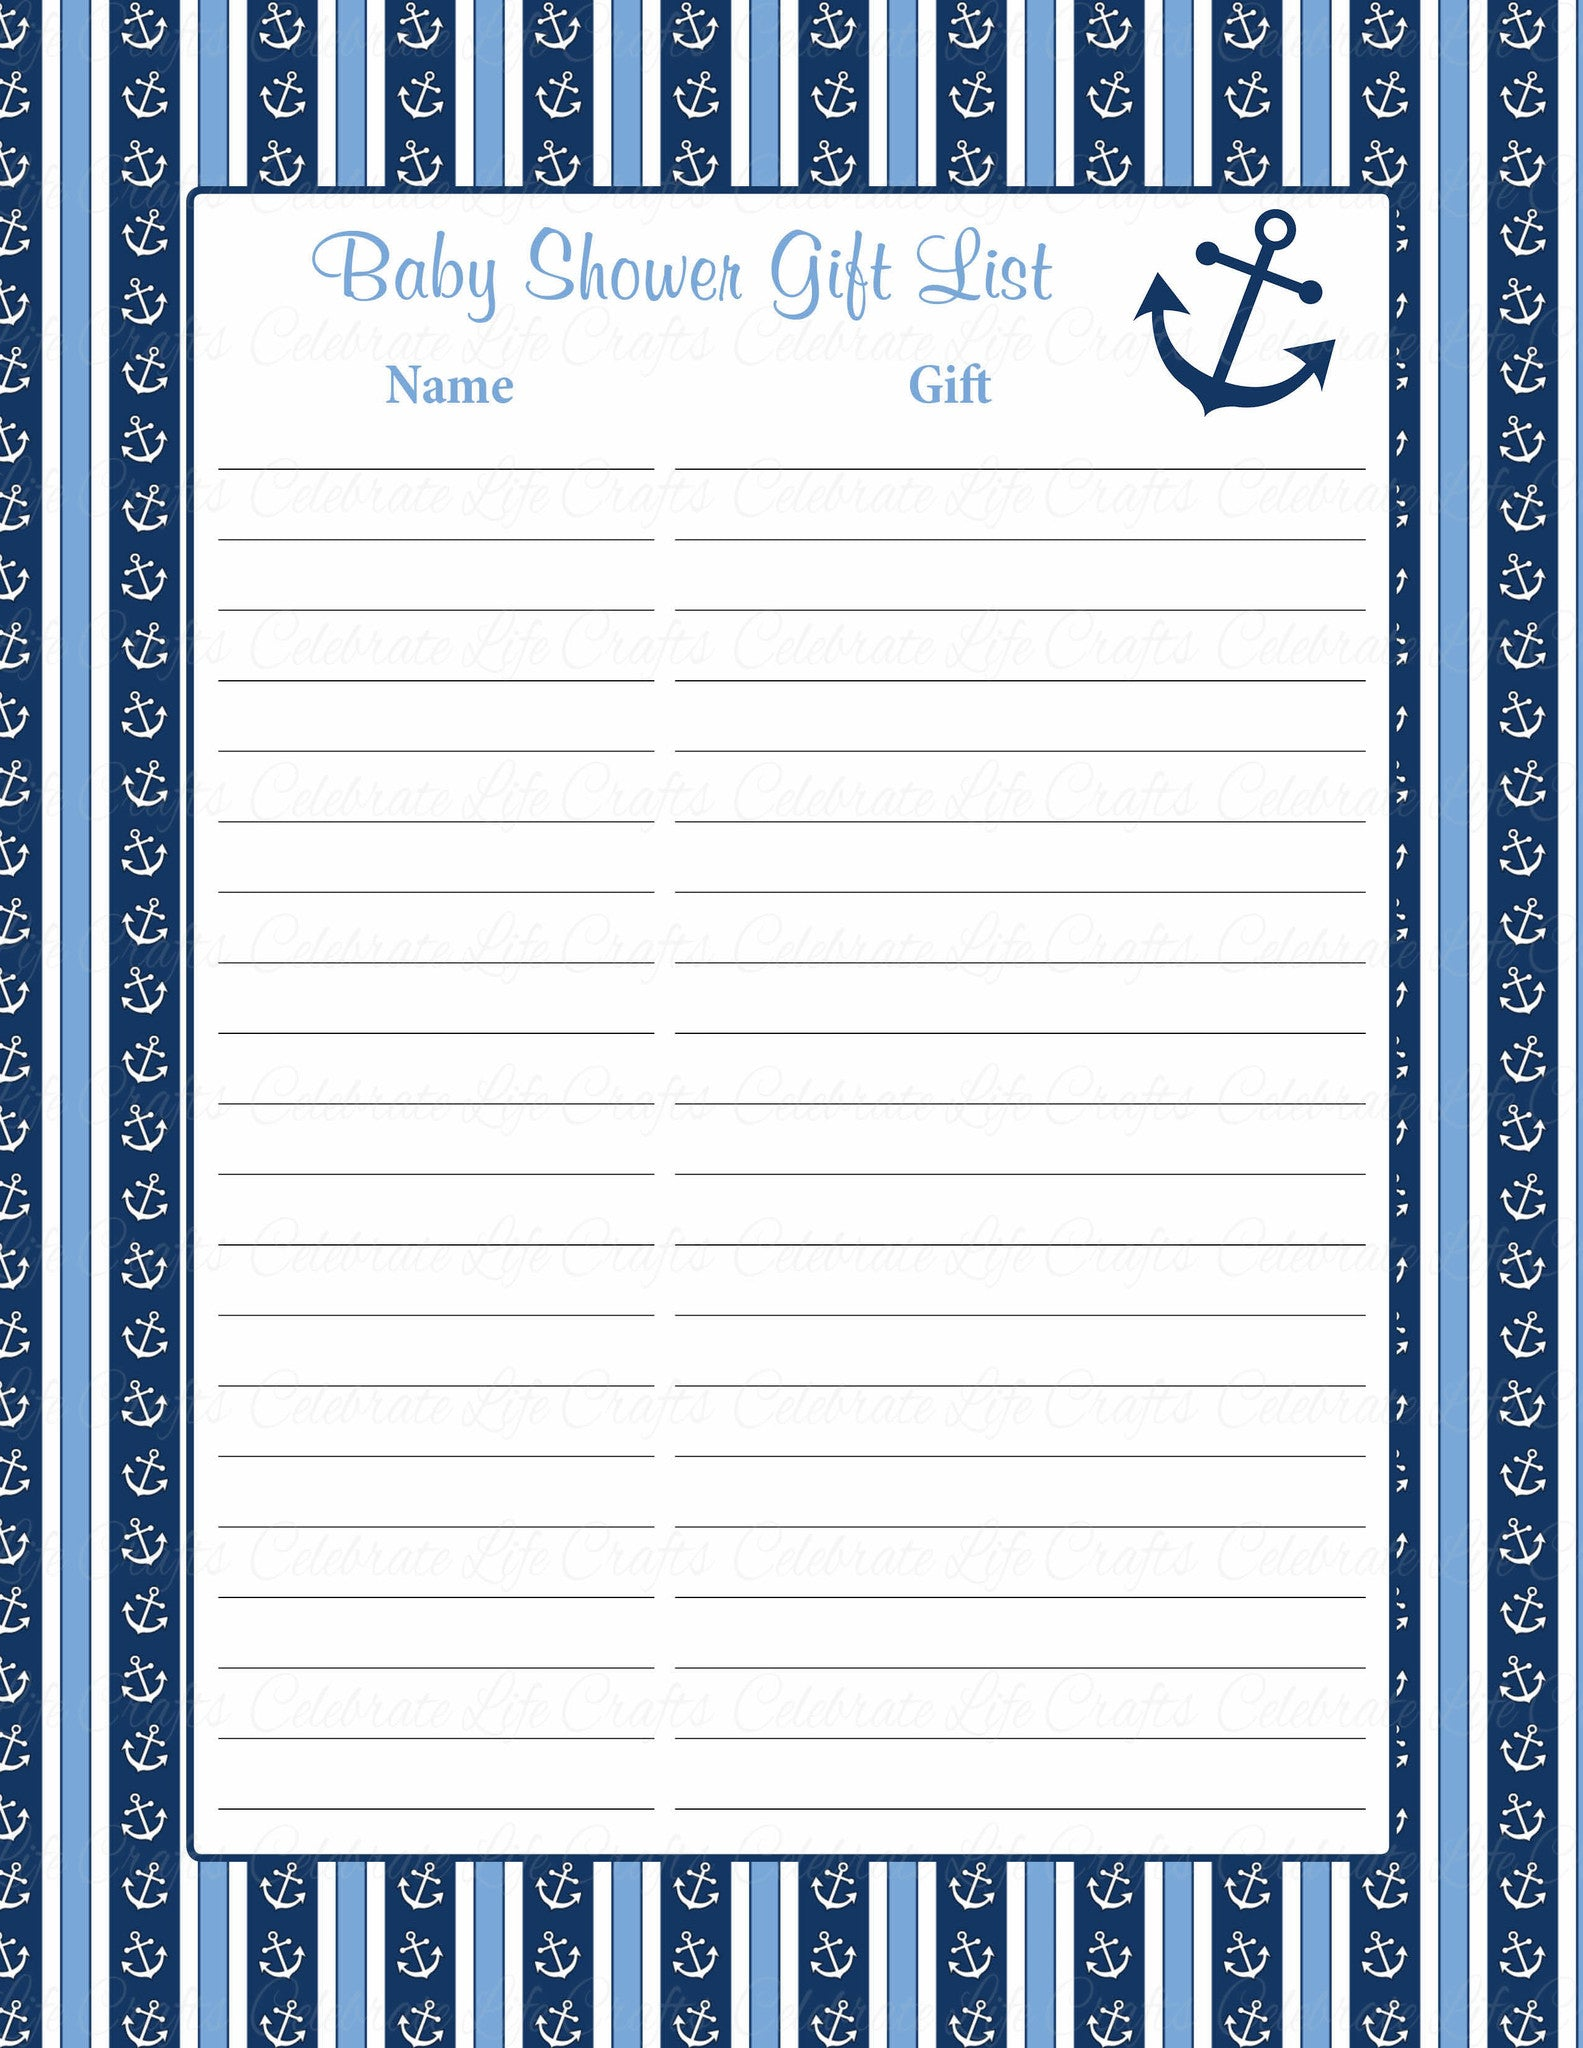 photo relating to Printable Baby Shower Gift List named Little one Shower Present Checklist Fastened - Printable Obtain - Military services Blue Boy or girl Shower Decorations - B15002